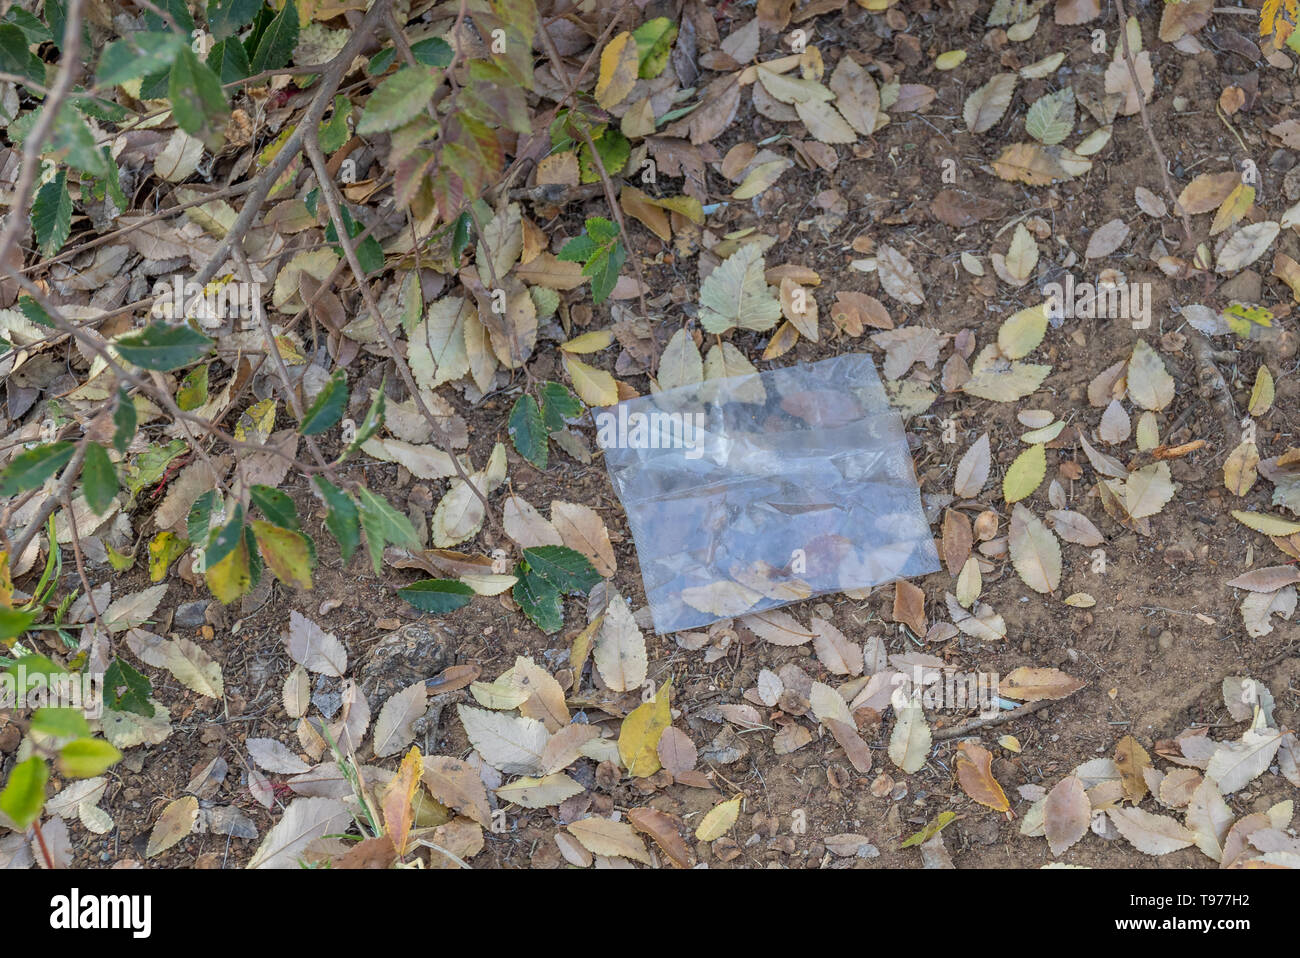 An isolated single-use plastic bag lies abandoned in nature image with copy space - Stock Image